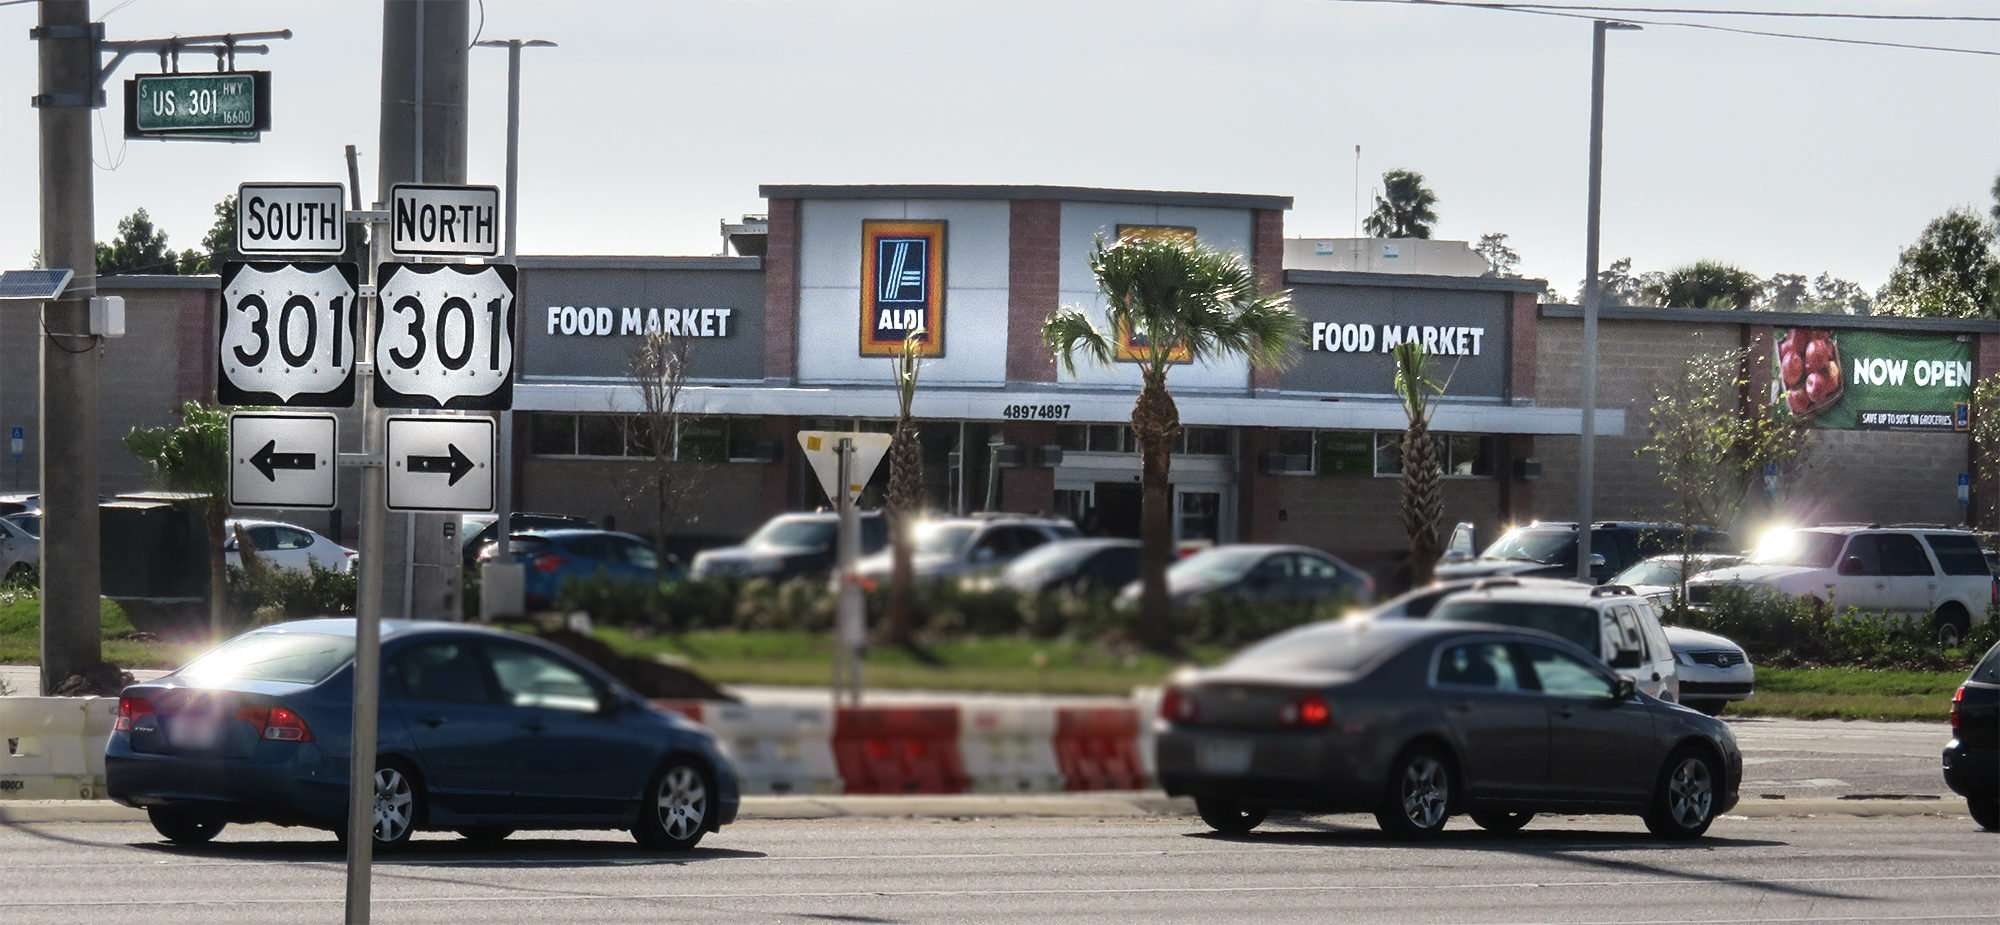 12.17.2016 - Aldi at 301 and 674 opens Dec 15, 2015 in Sun City Center, FL/photonews247.com